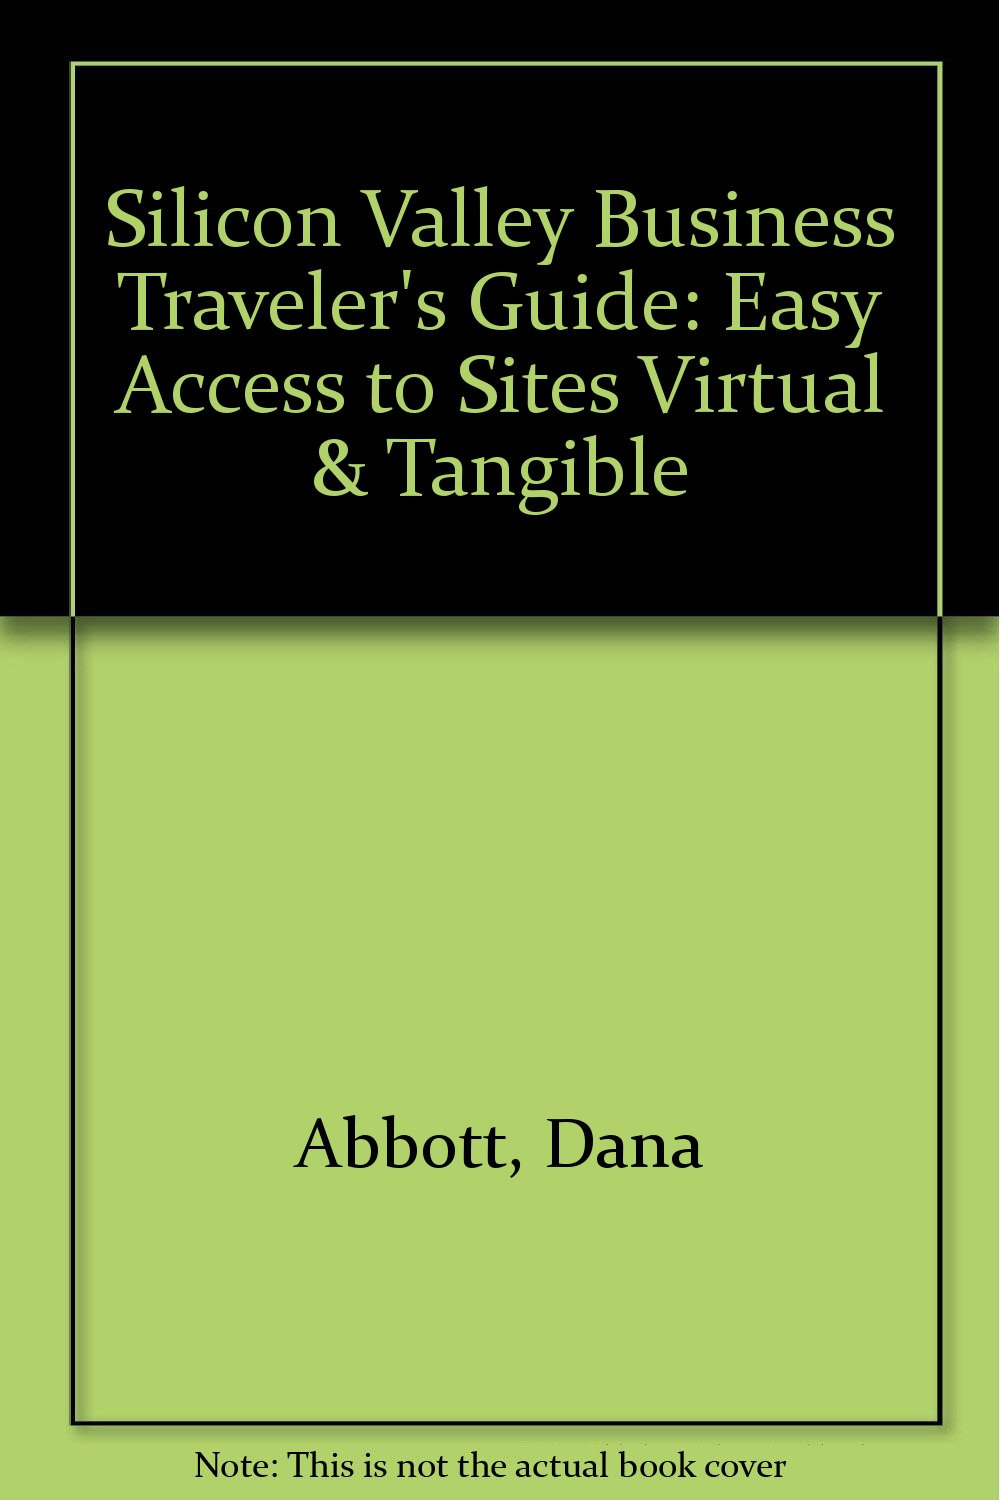 Silicon Valley Business Traveler's Guide: Easy Access to Sites Virtual & Tangible